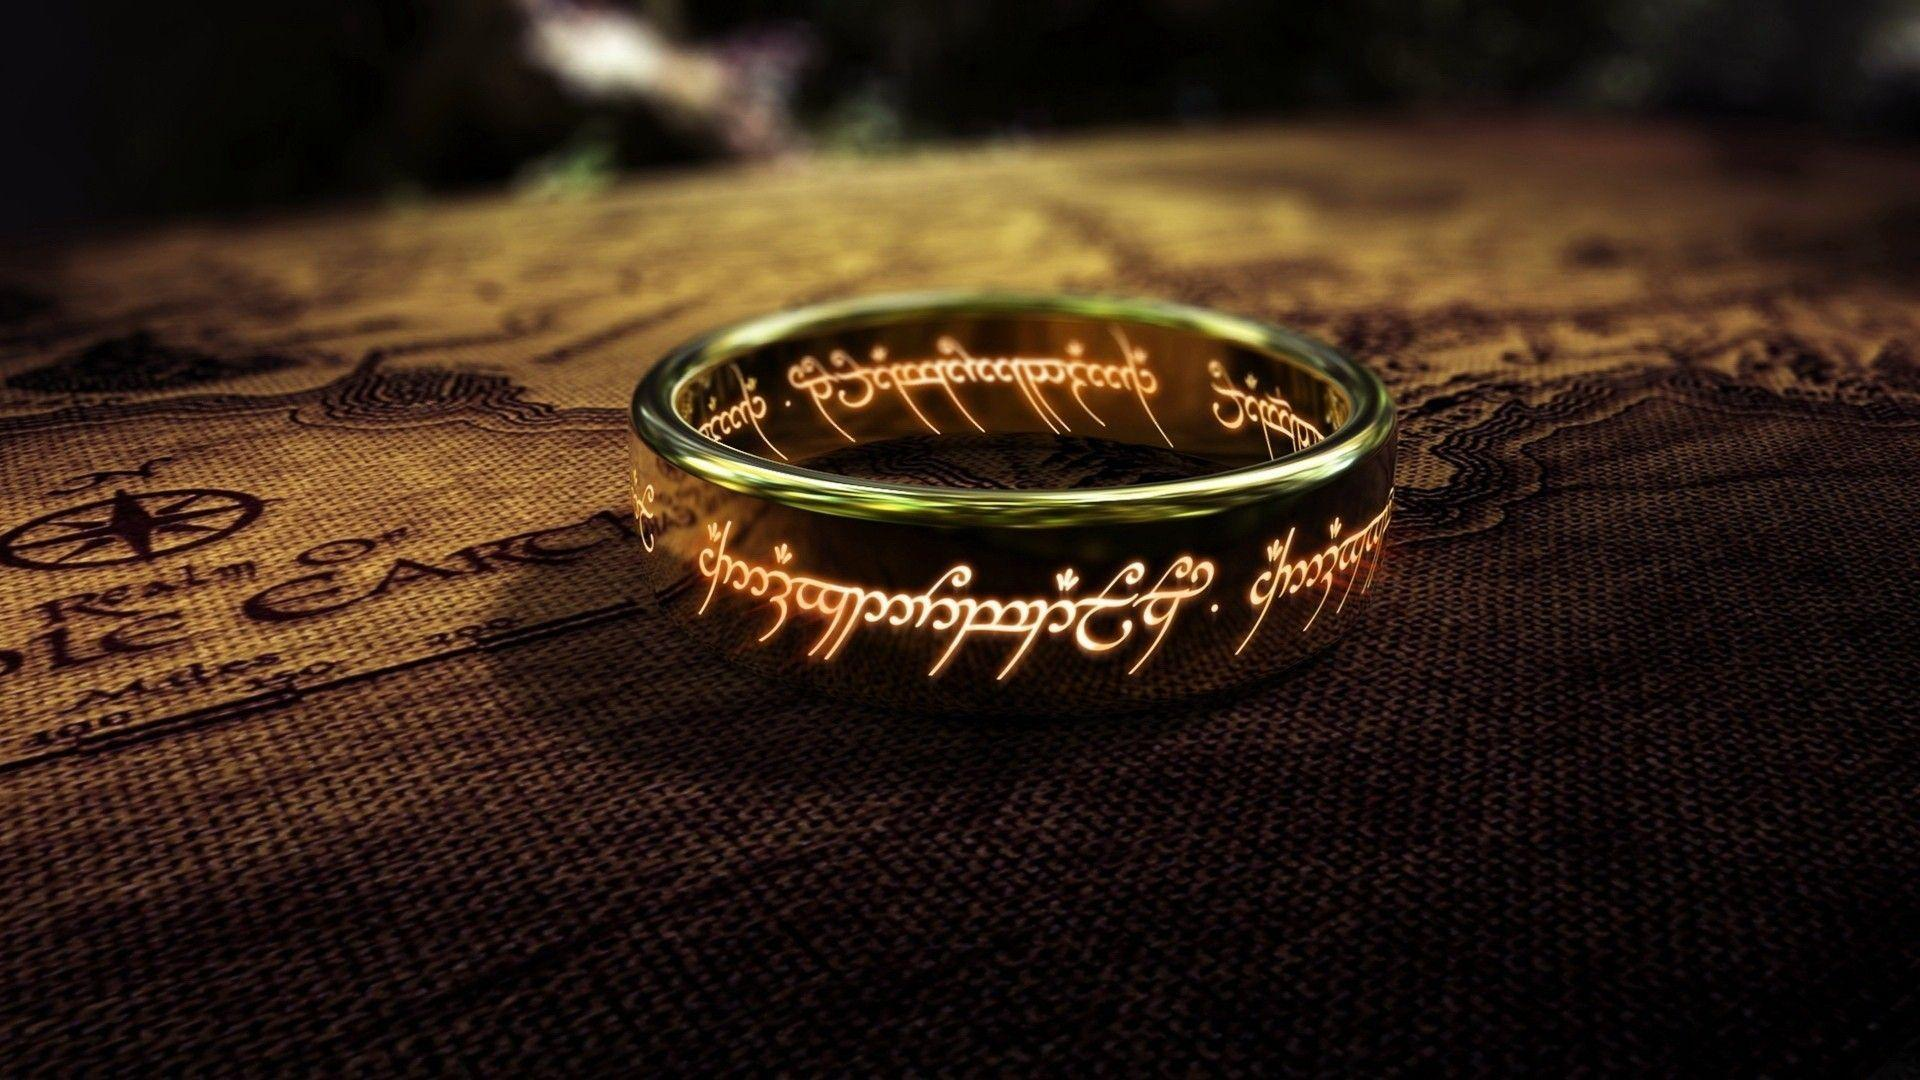 lotr wallpaper hd - photo #23